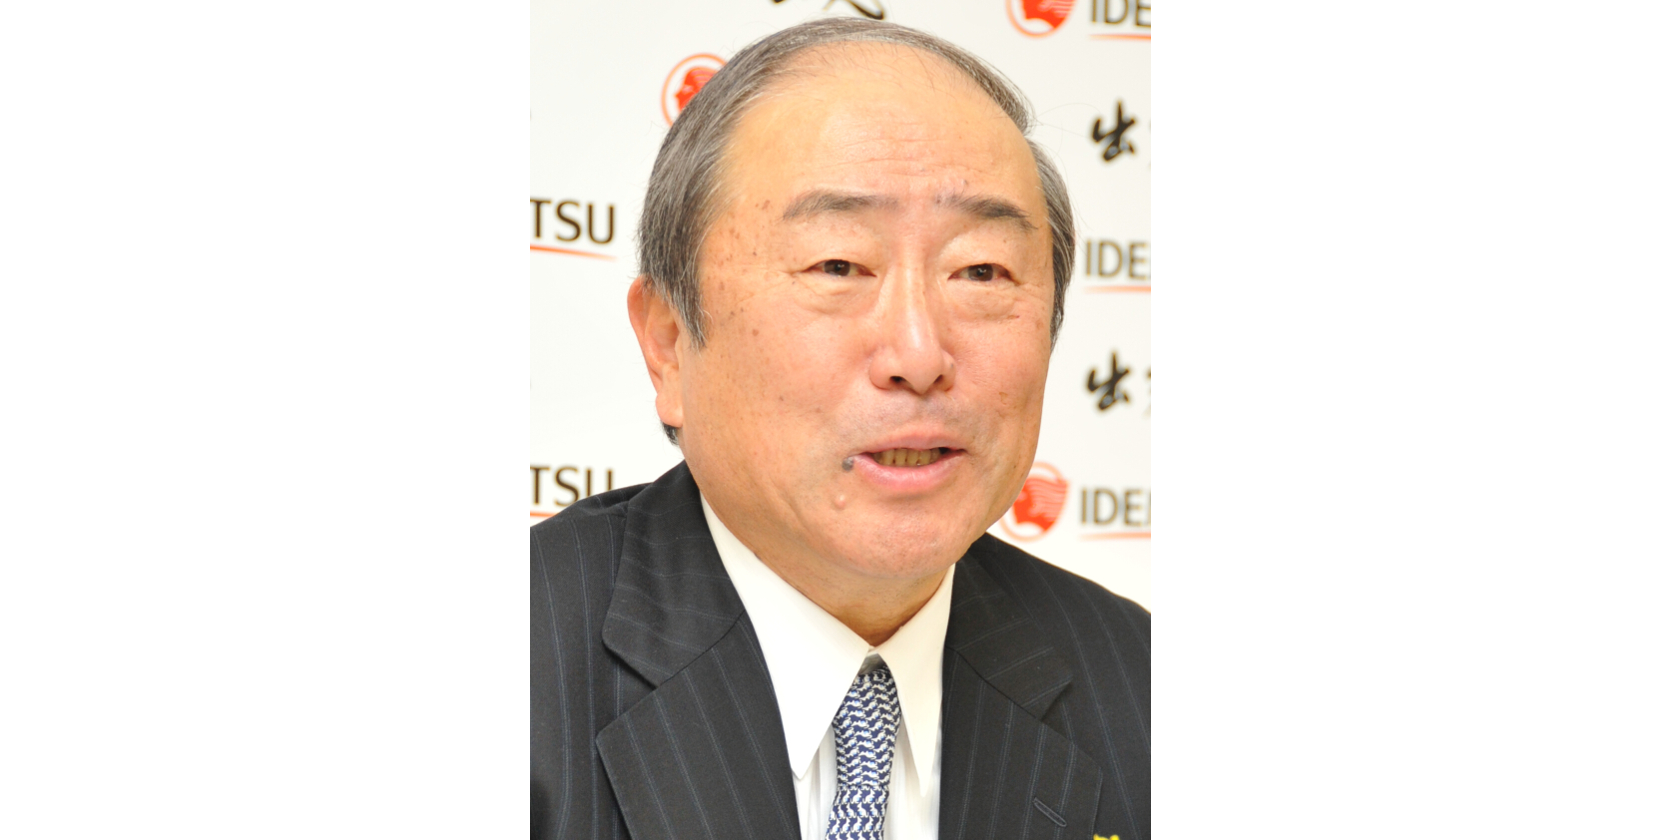 Interview: Idemitsu Kosan President Takashi Tsukioka Talks Company Aims, Alliance With Showa Shell